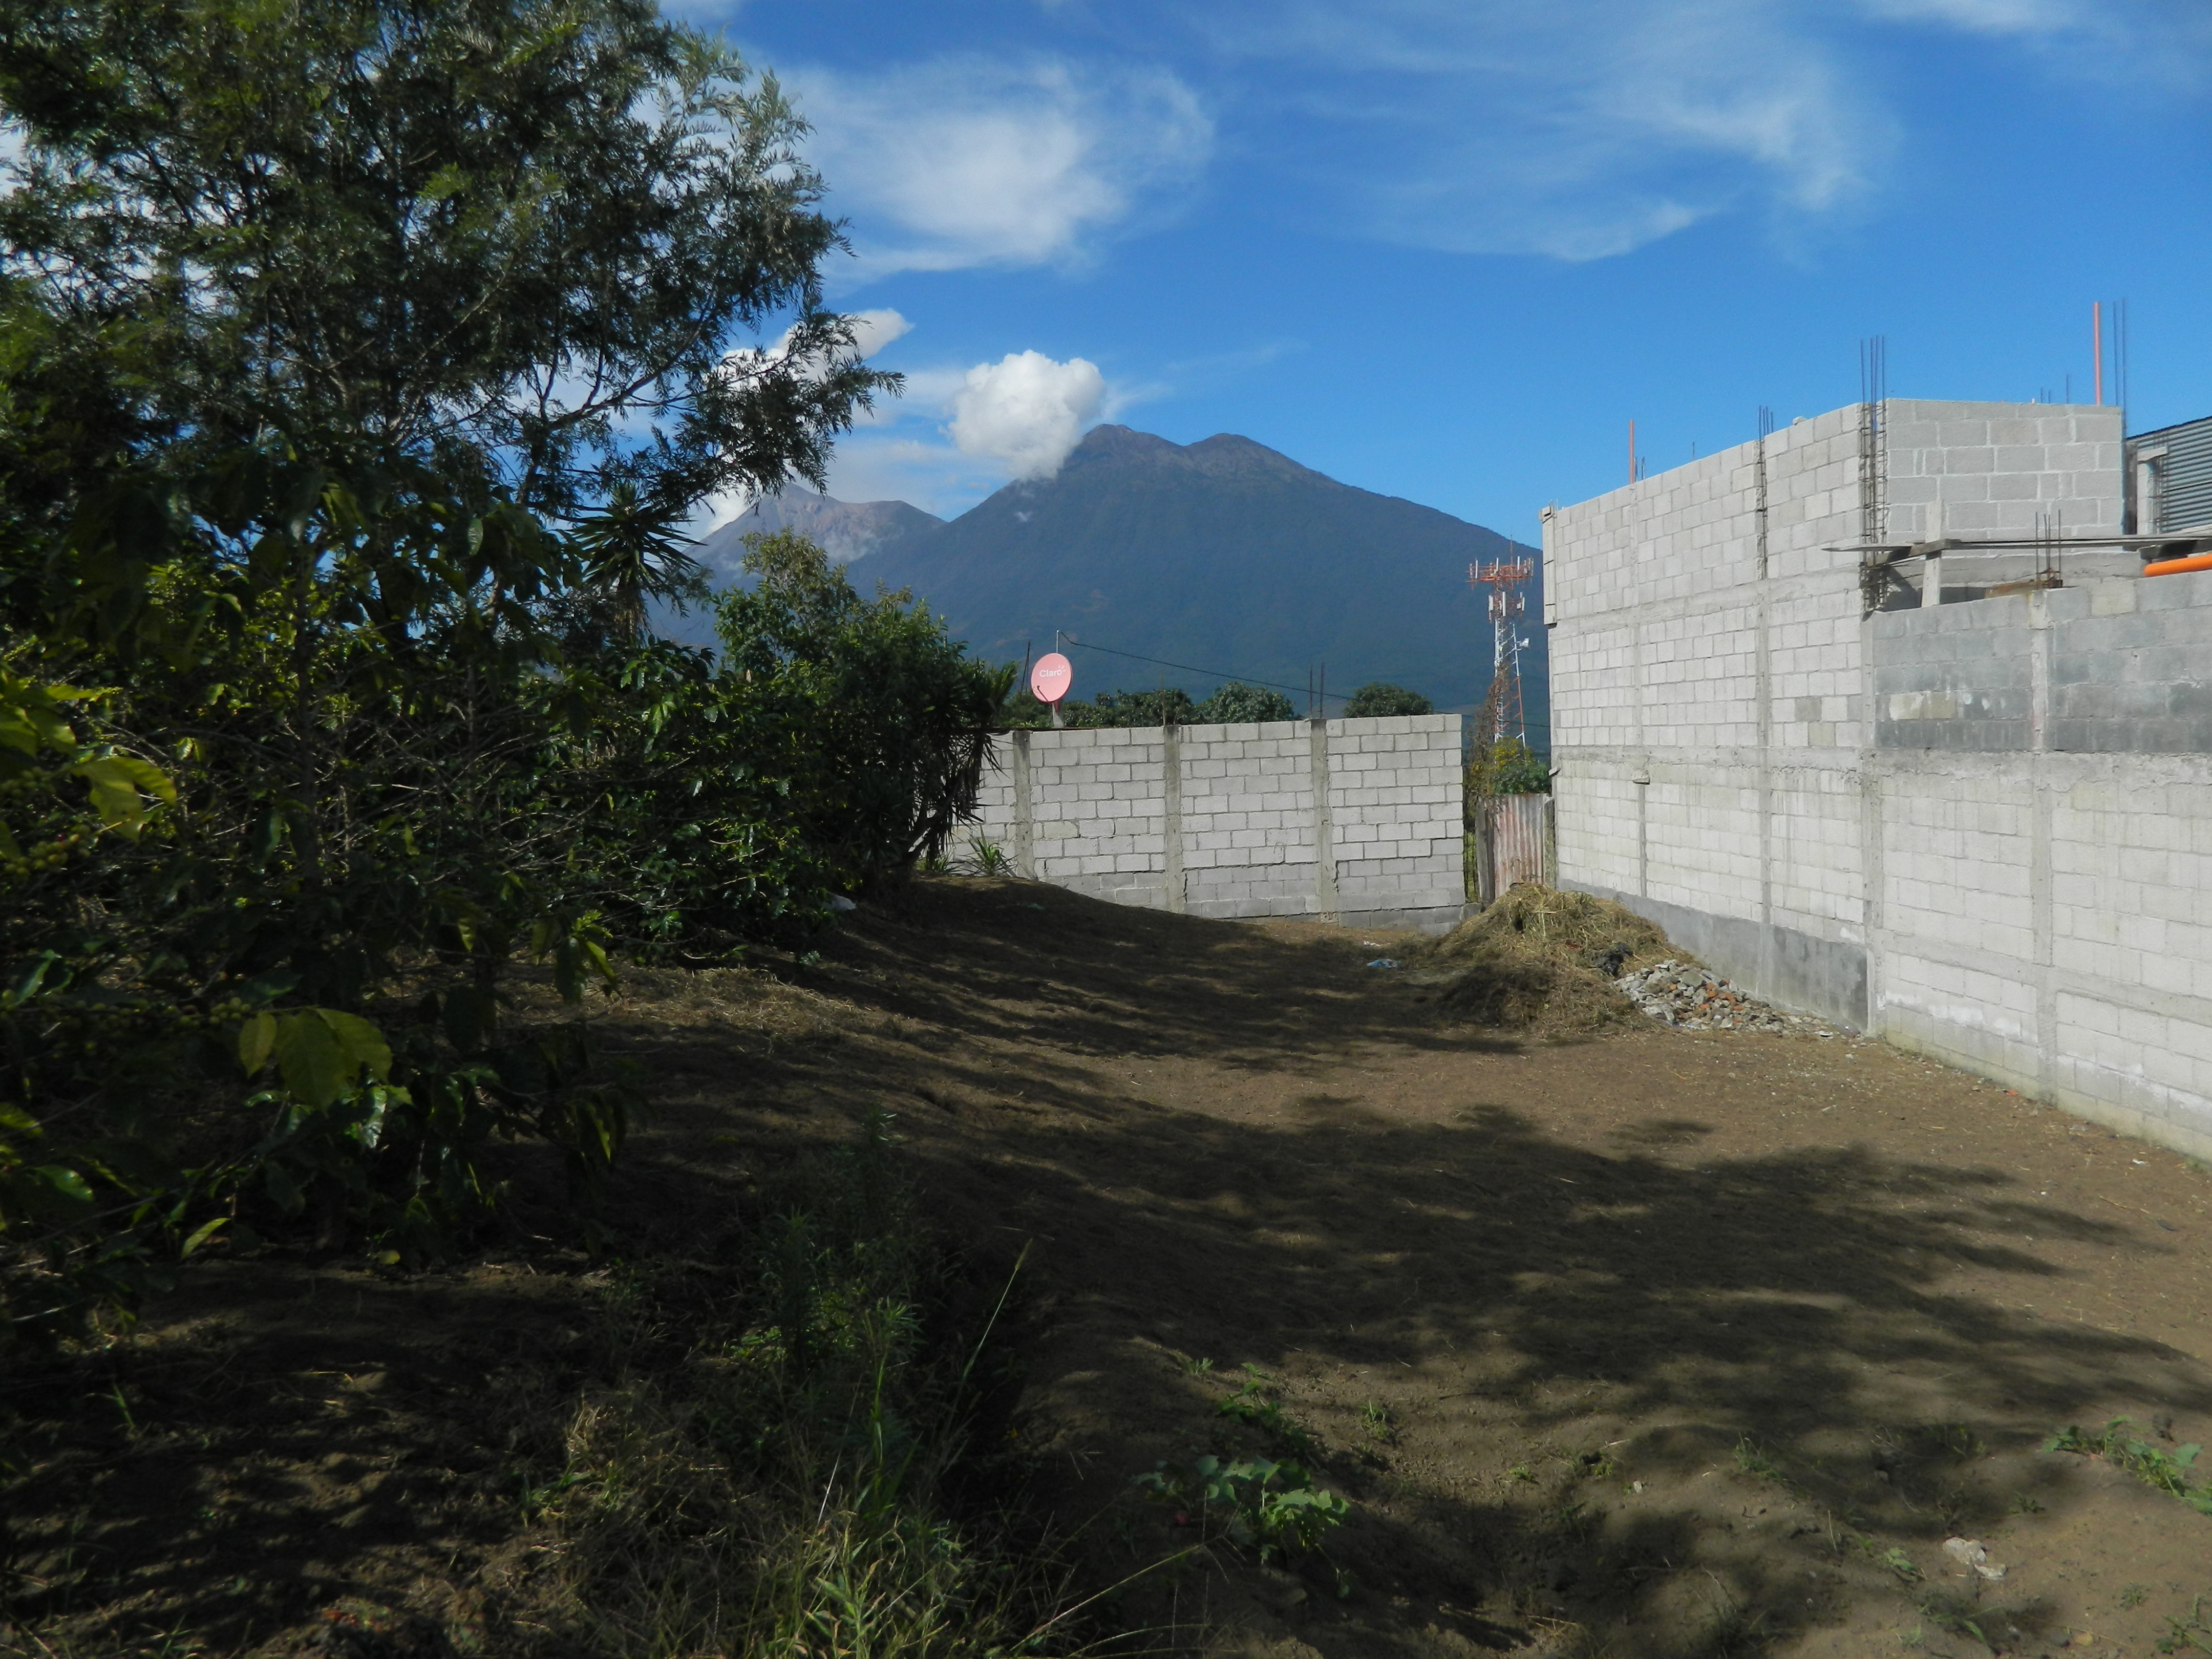 4570 NICE PEACE OF LAND FOR SALE IN CIUDAD VIEJA